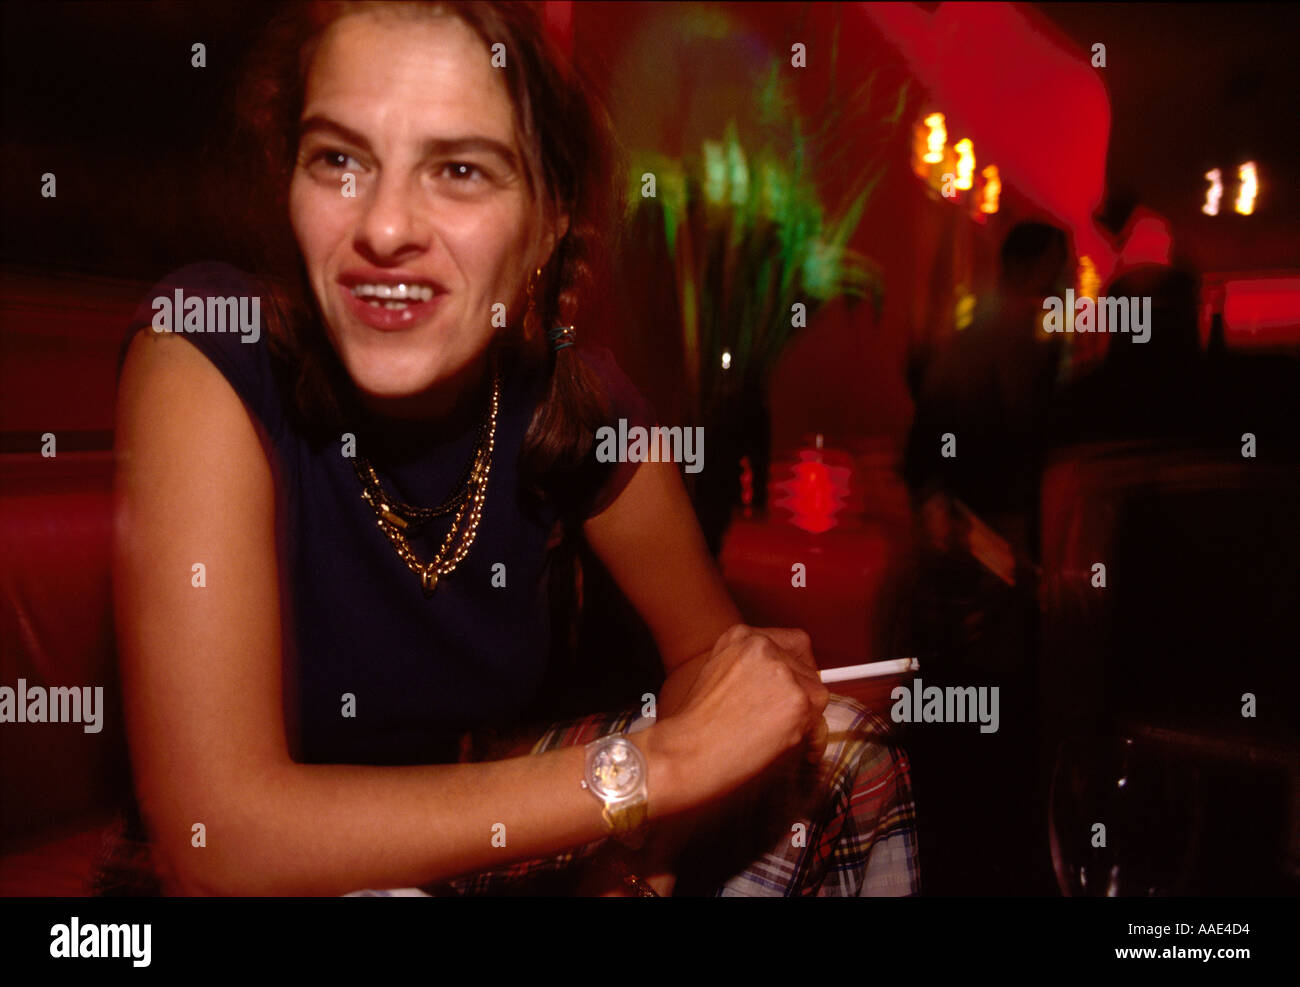 Artist Tracy Emin  in London club, England, UK Stock Photo